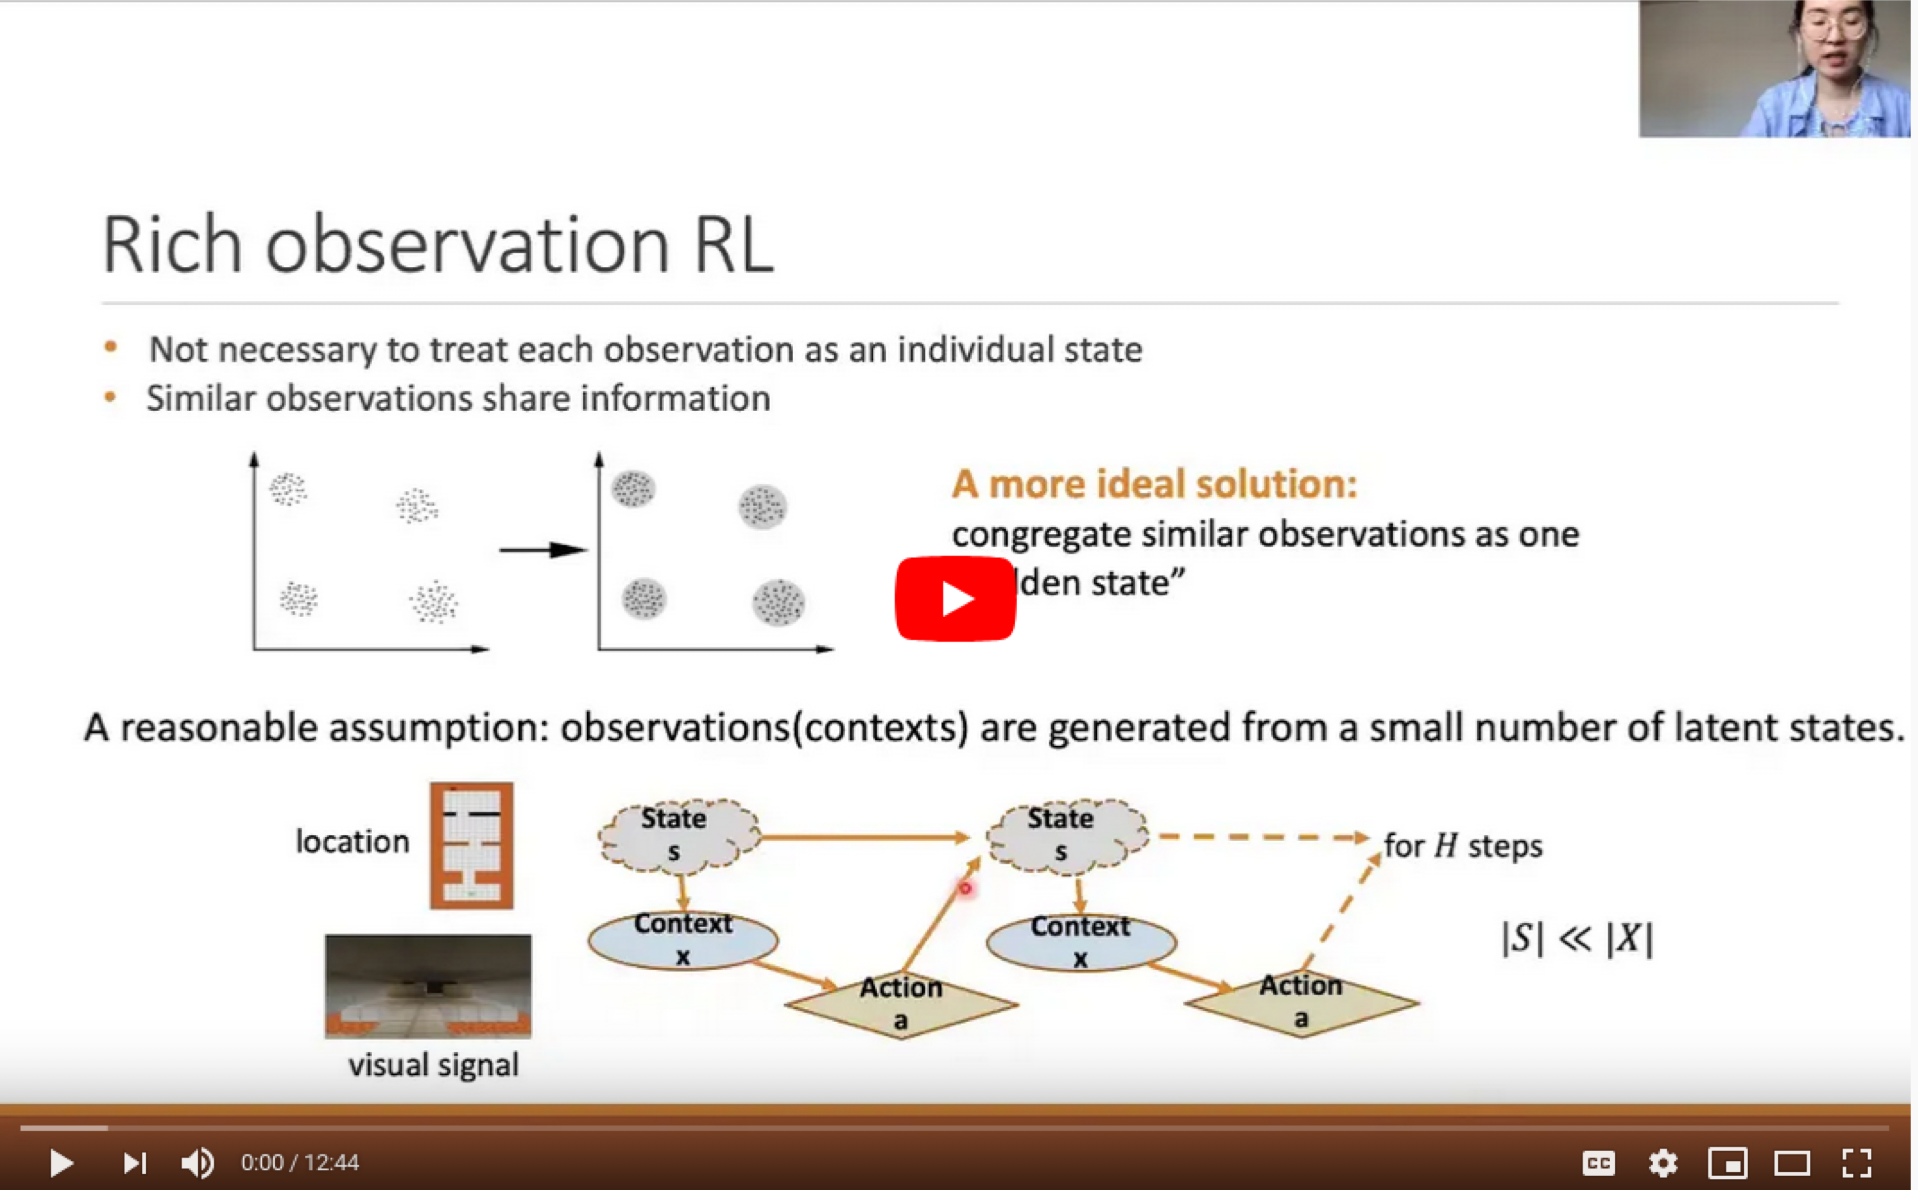 Provably Efficient Exploration for RL with Unsupervised Learning